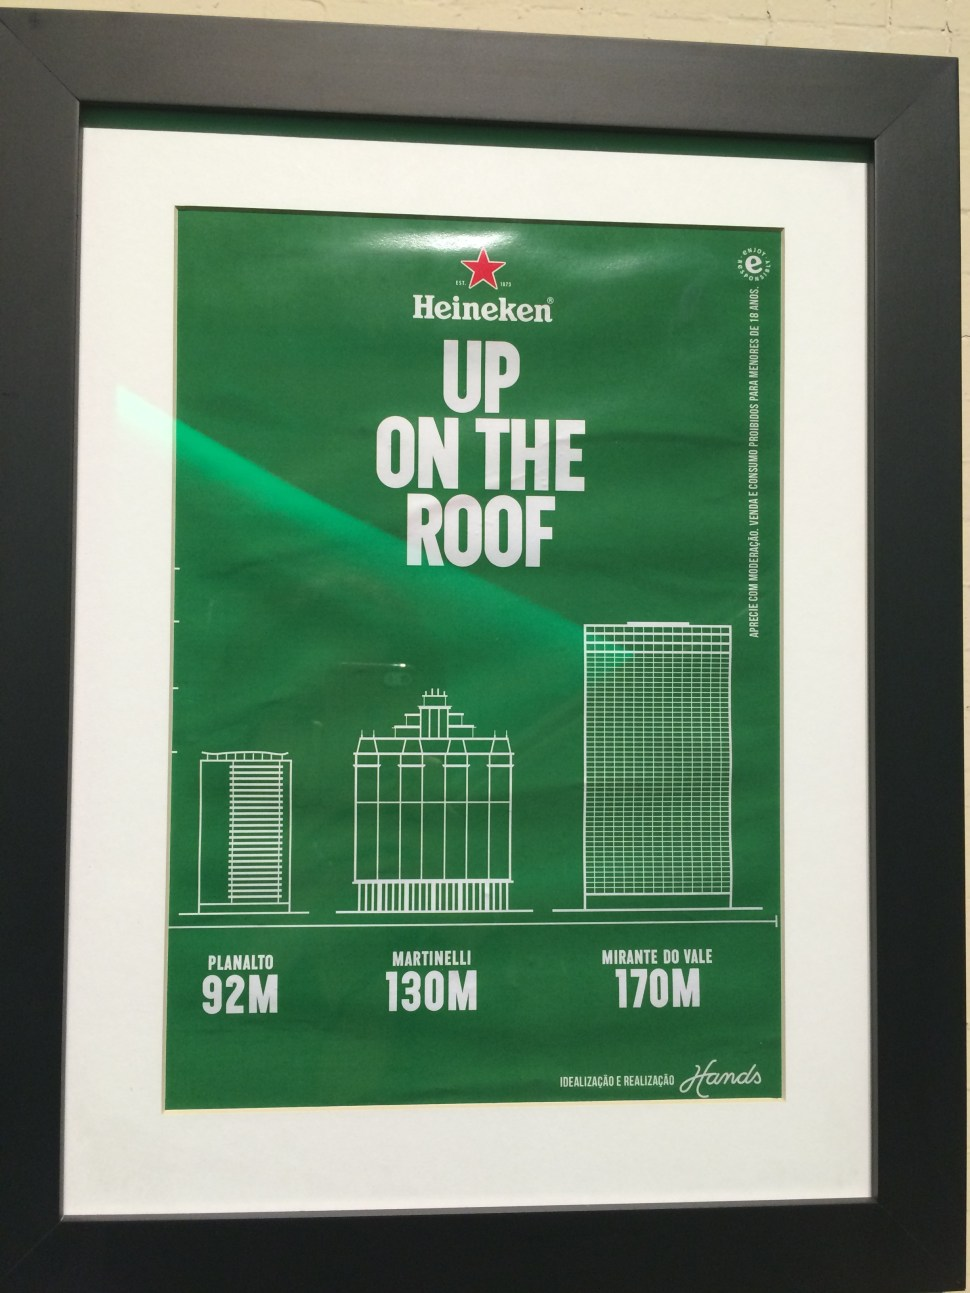 heineken up on the roof facebook